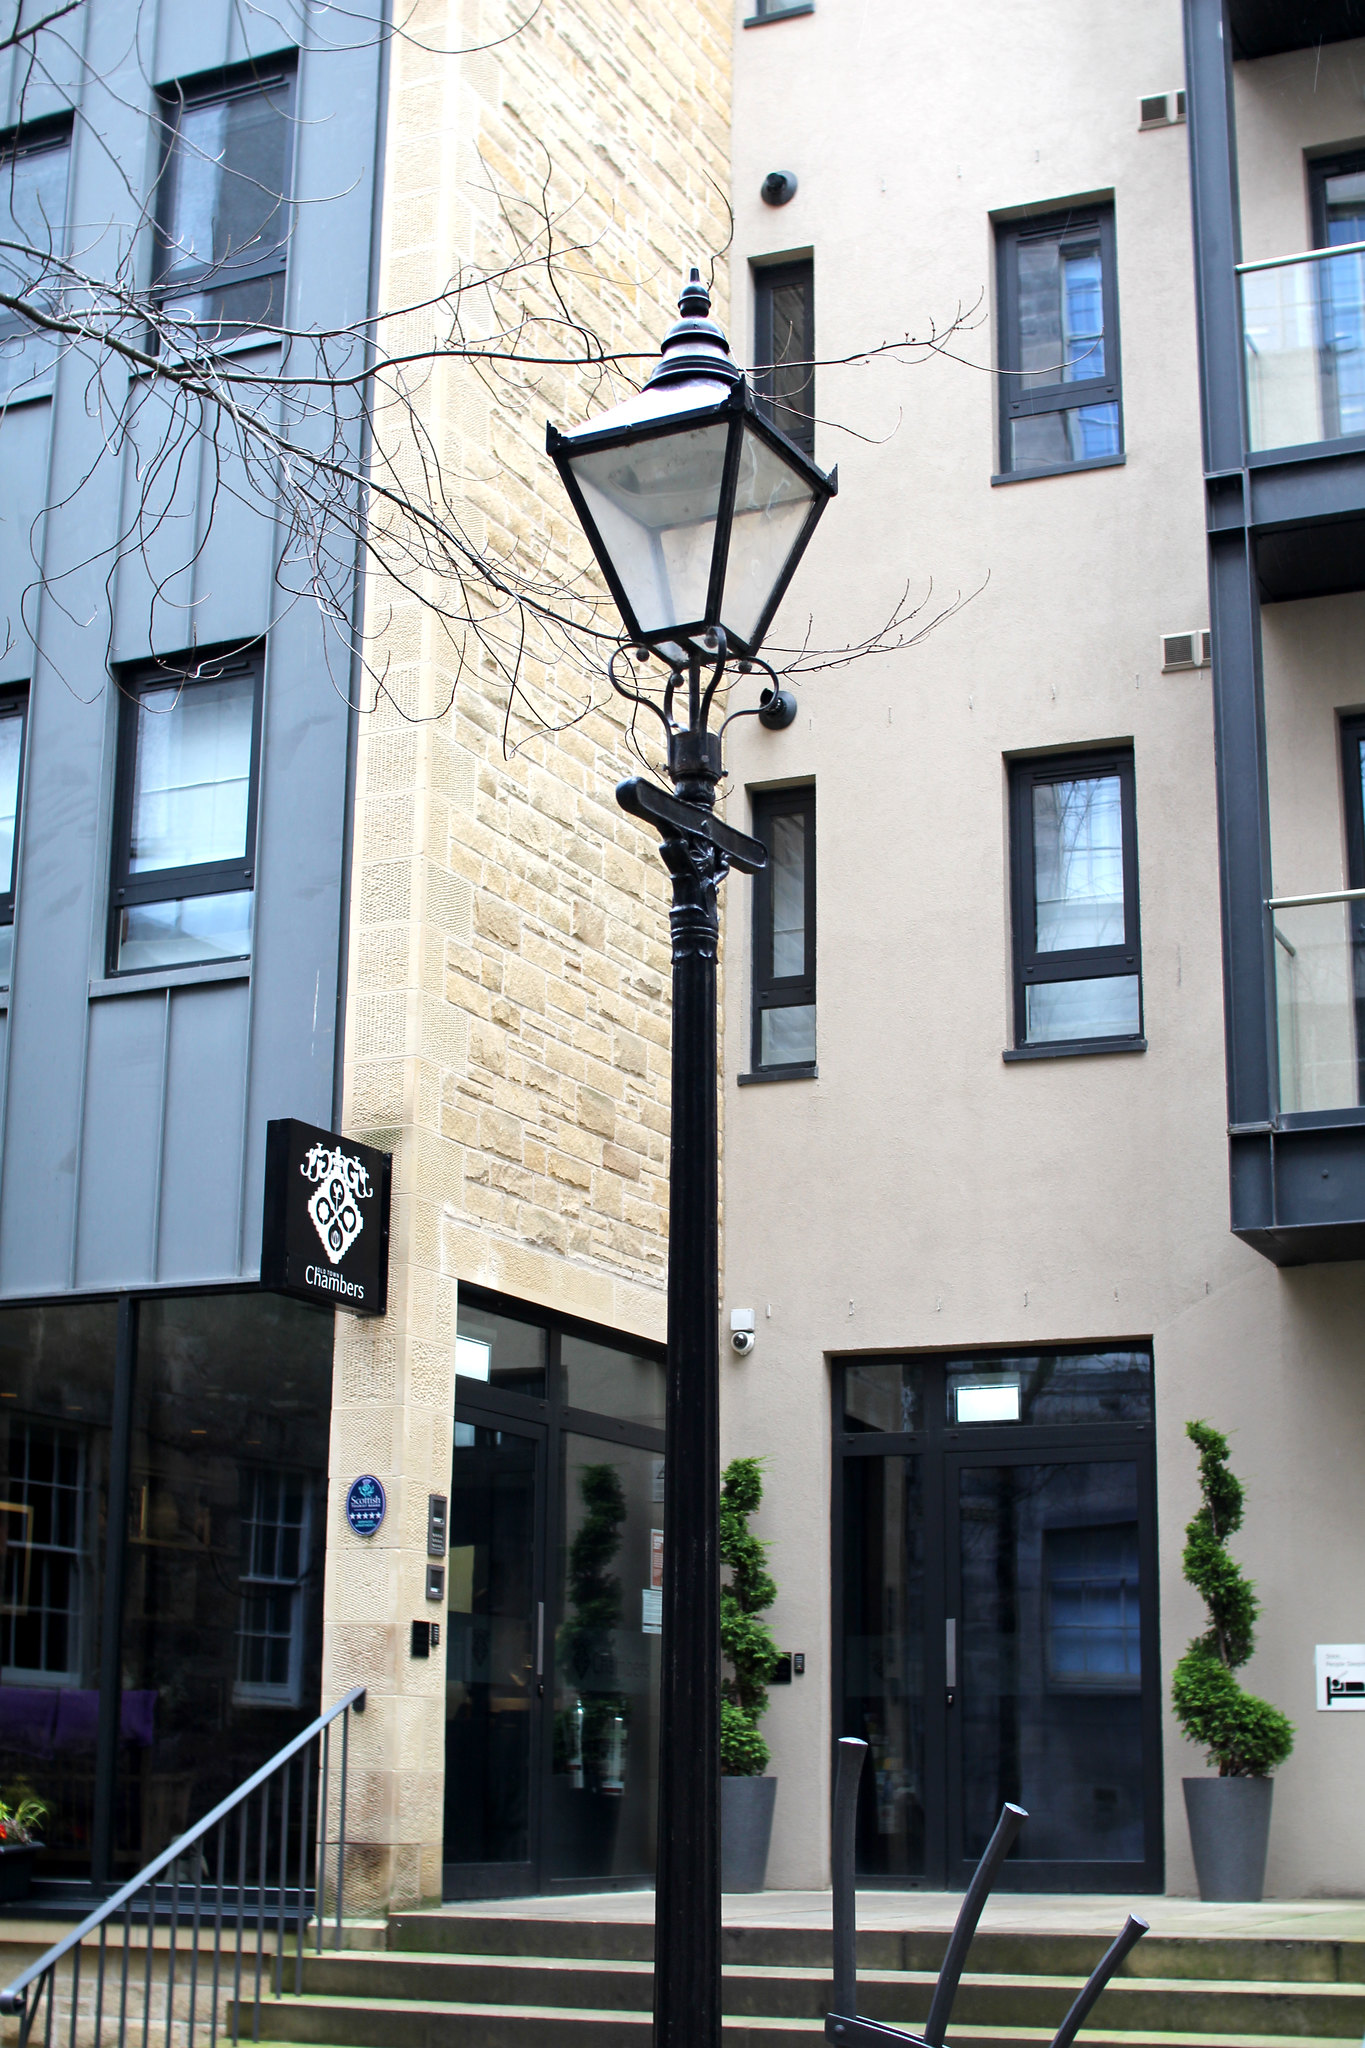 Old Town Chambers 5 star apartments Edinburgh review travel blogger UK